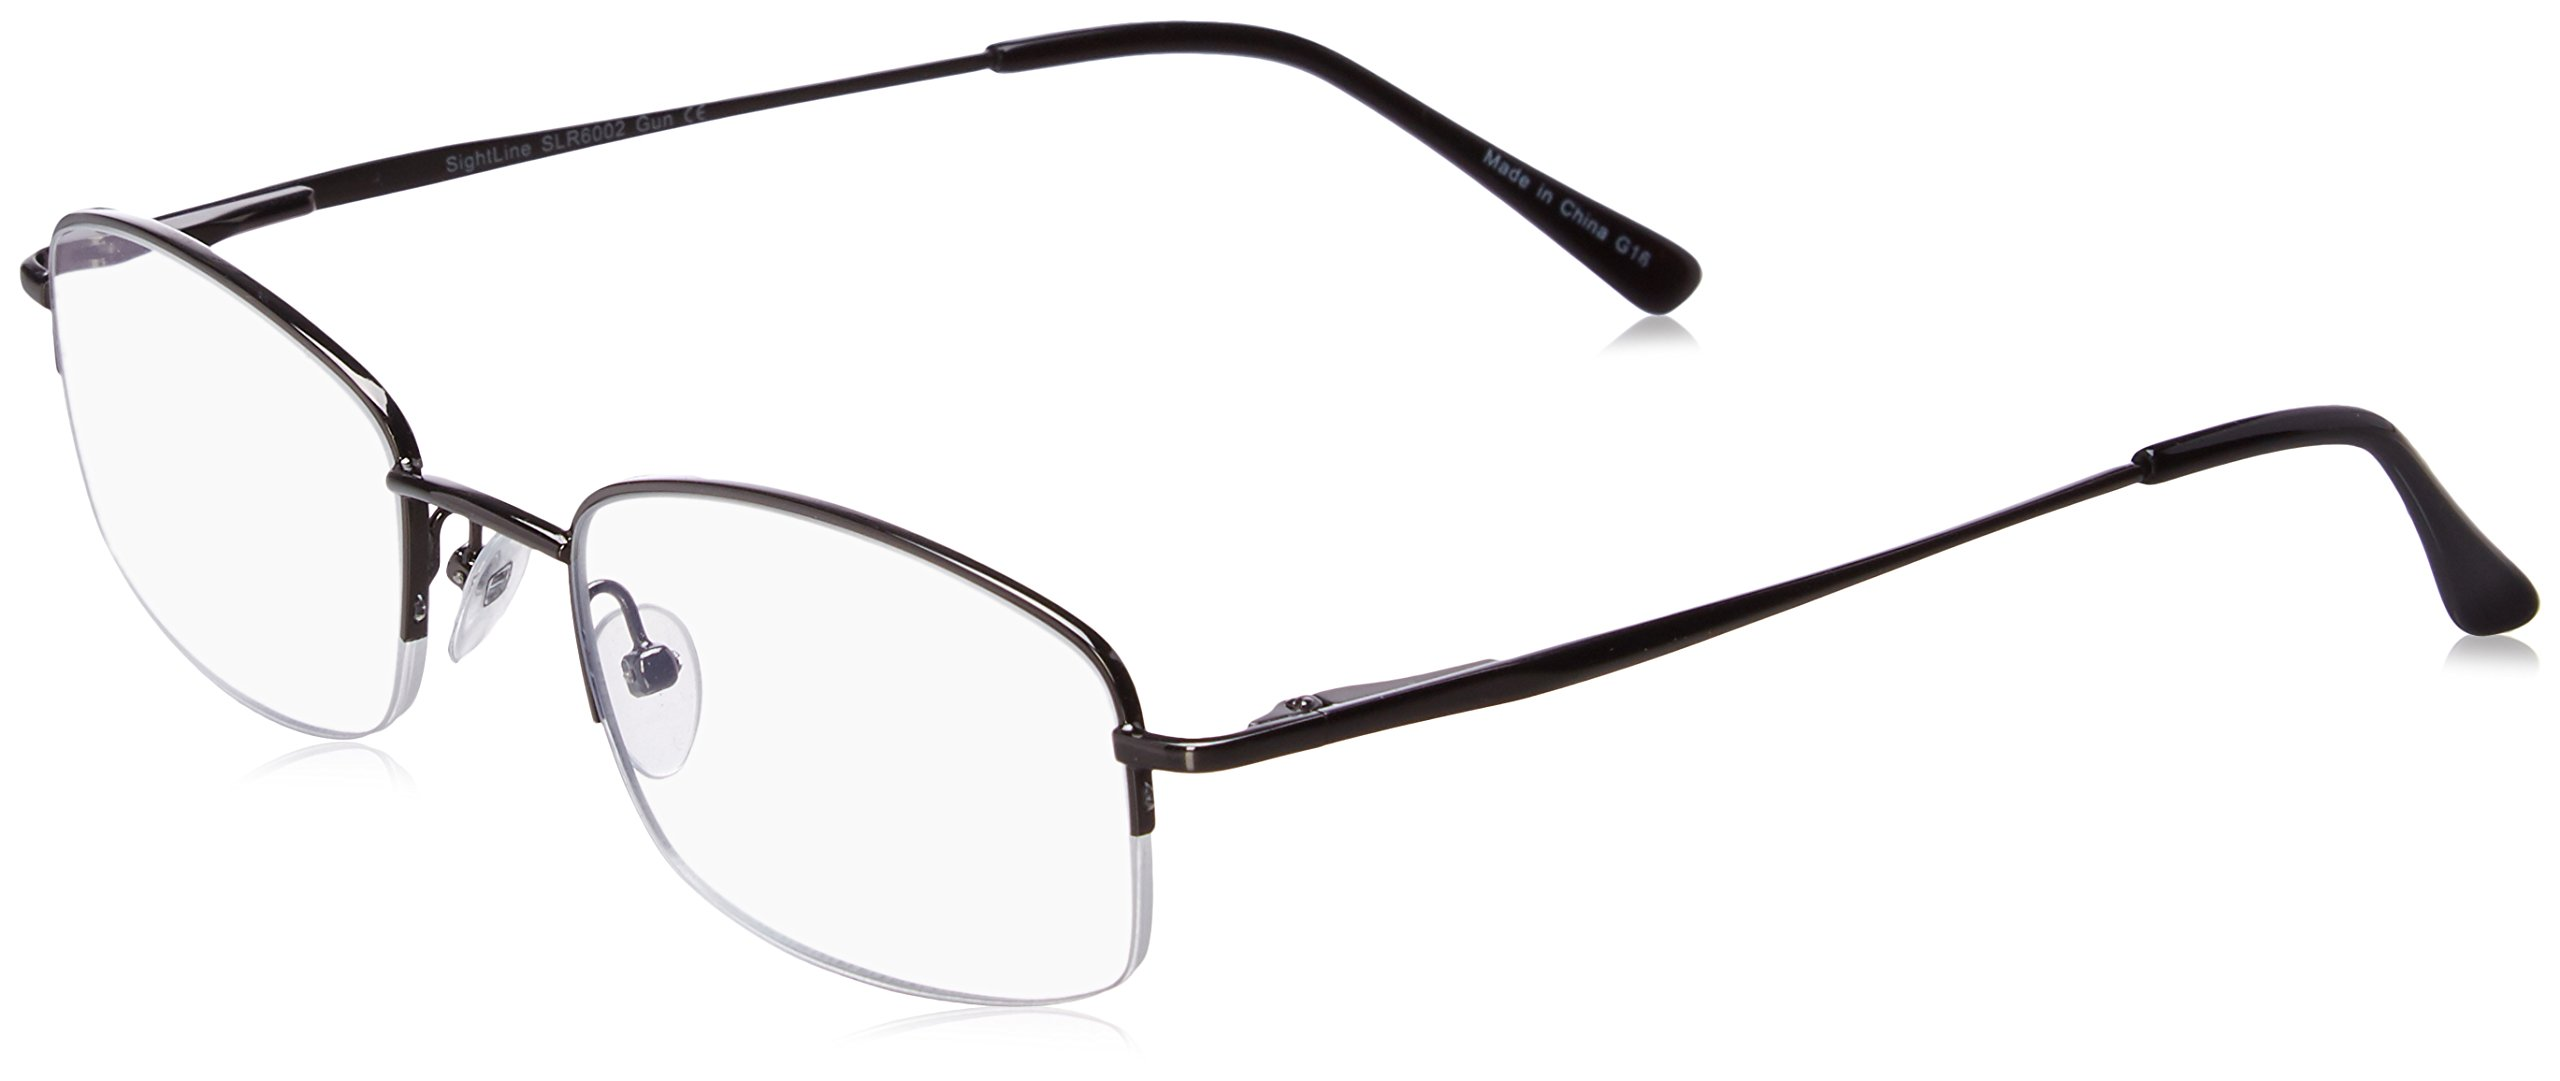 8ce258dc67 Amazon.com  SightLine Multifocal Computer Reading Glasses 6002 Semi-Rimless  Designer Frames (2.00